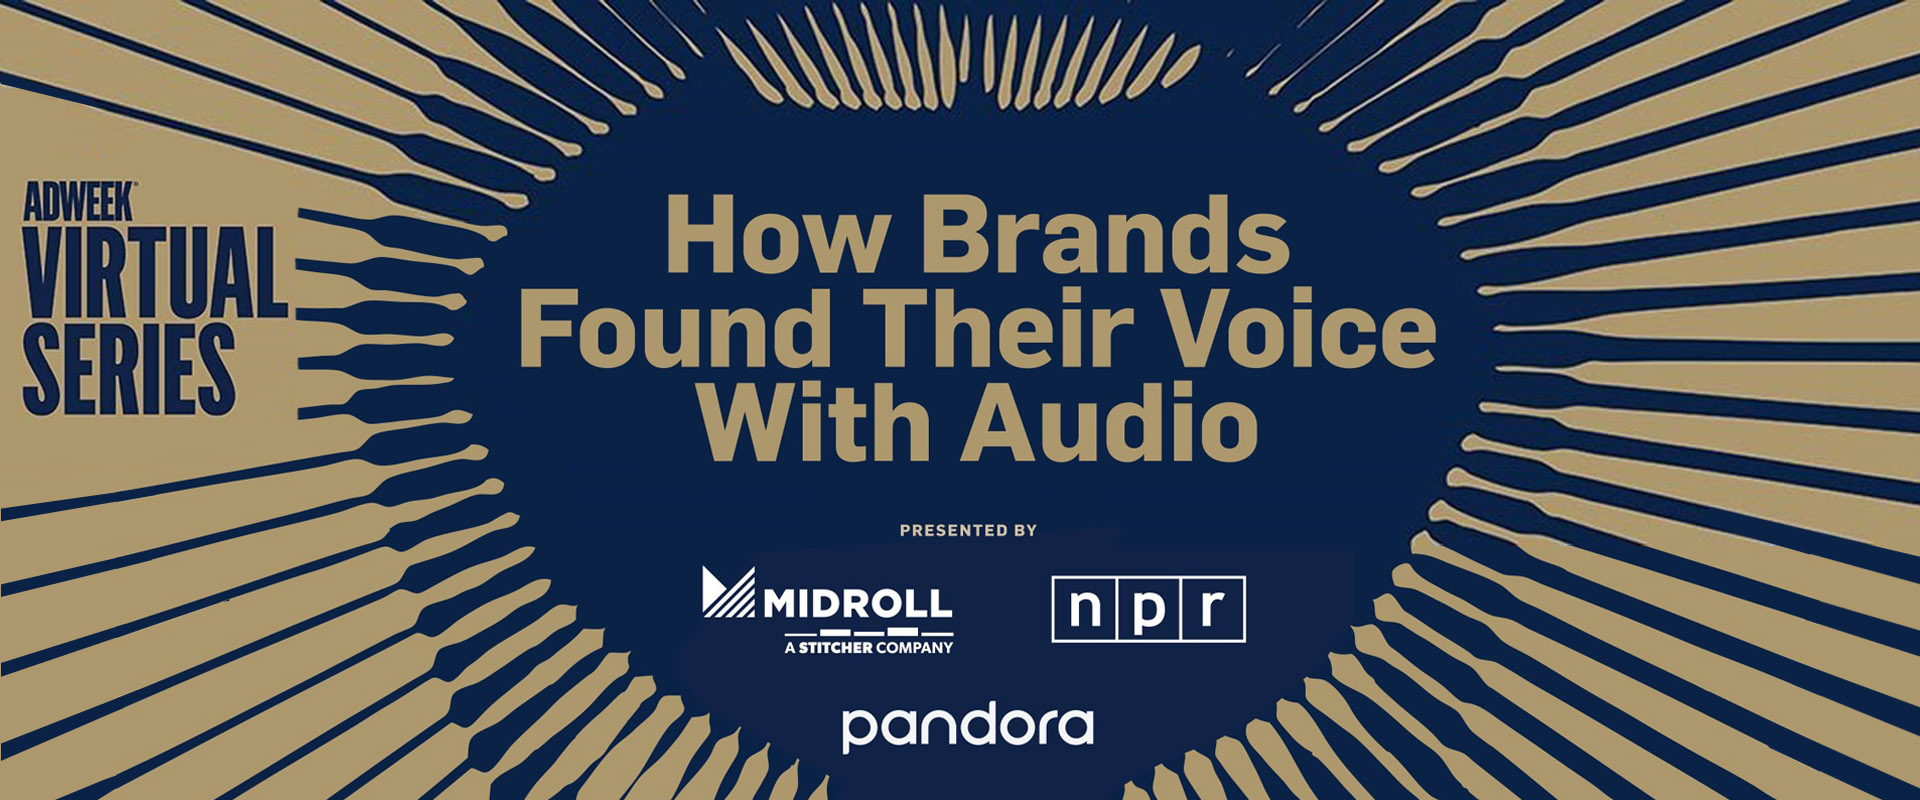 Adweek Virtual Events - How Brands Found Their Voice With Audio, Presented by Midroll, NPR, Pandora